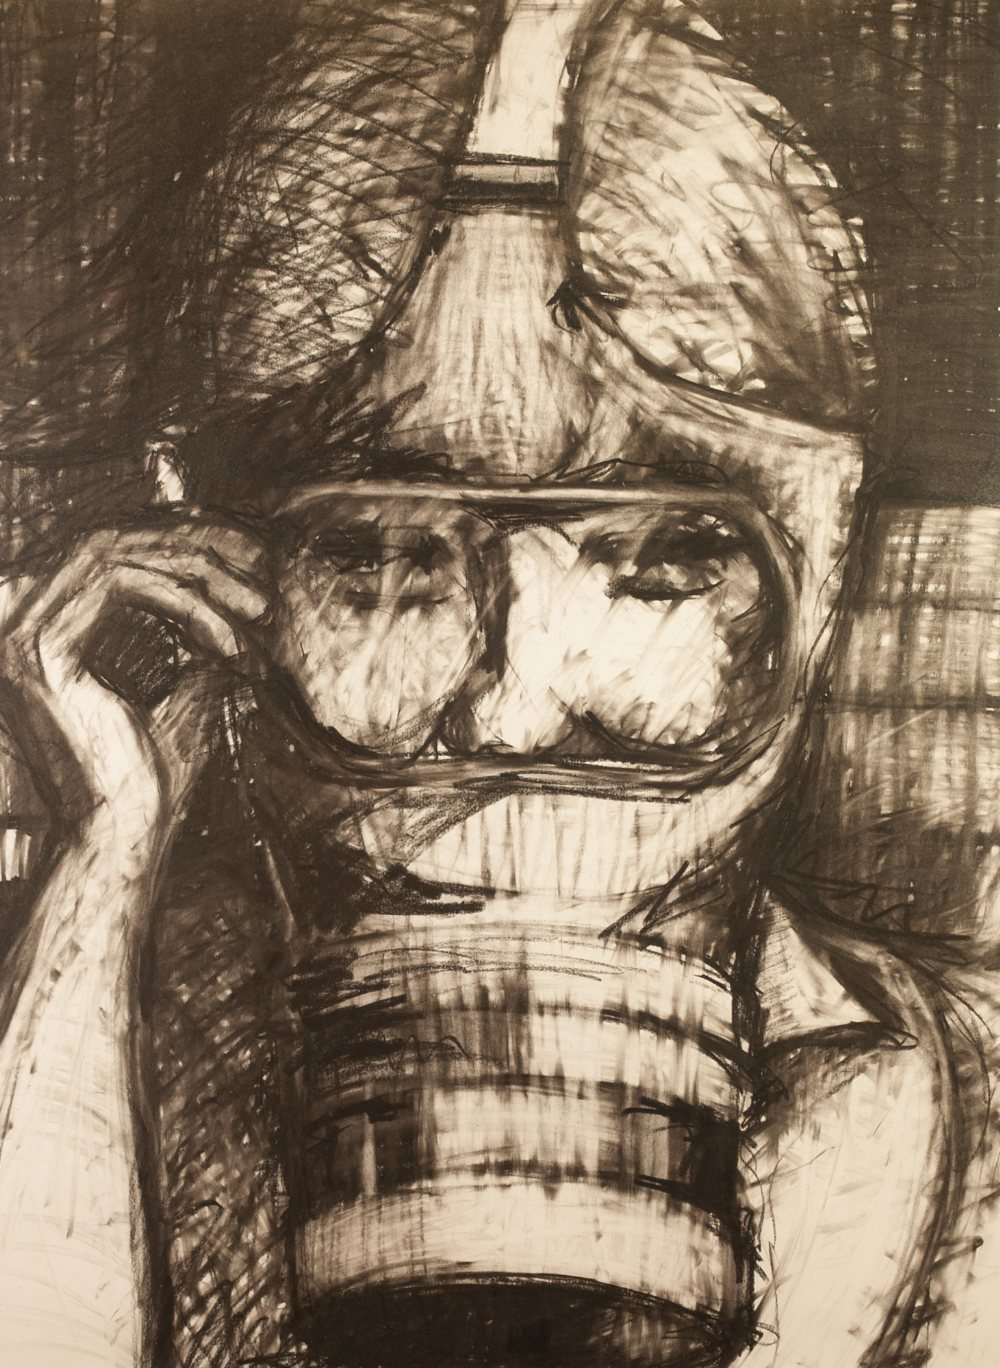 Lot 328 - CONTEMPORARY ARTIST MIXED MEDIA BLACK AND WHITE DRAWING OF A FIGURE wearing goggles, holding a